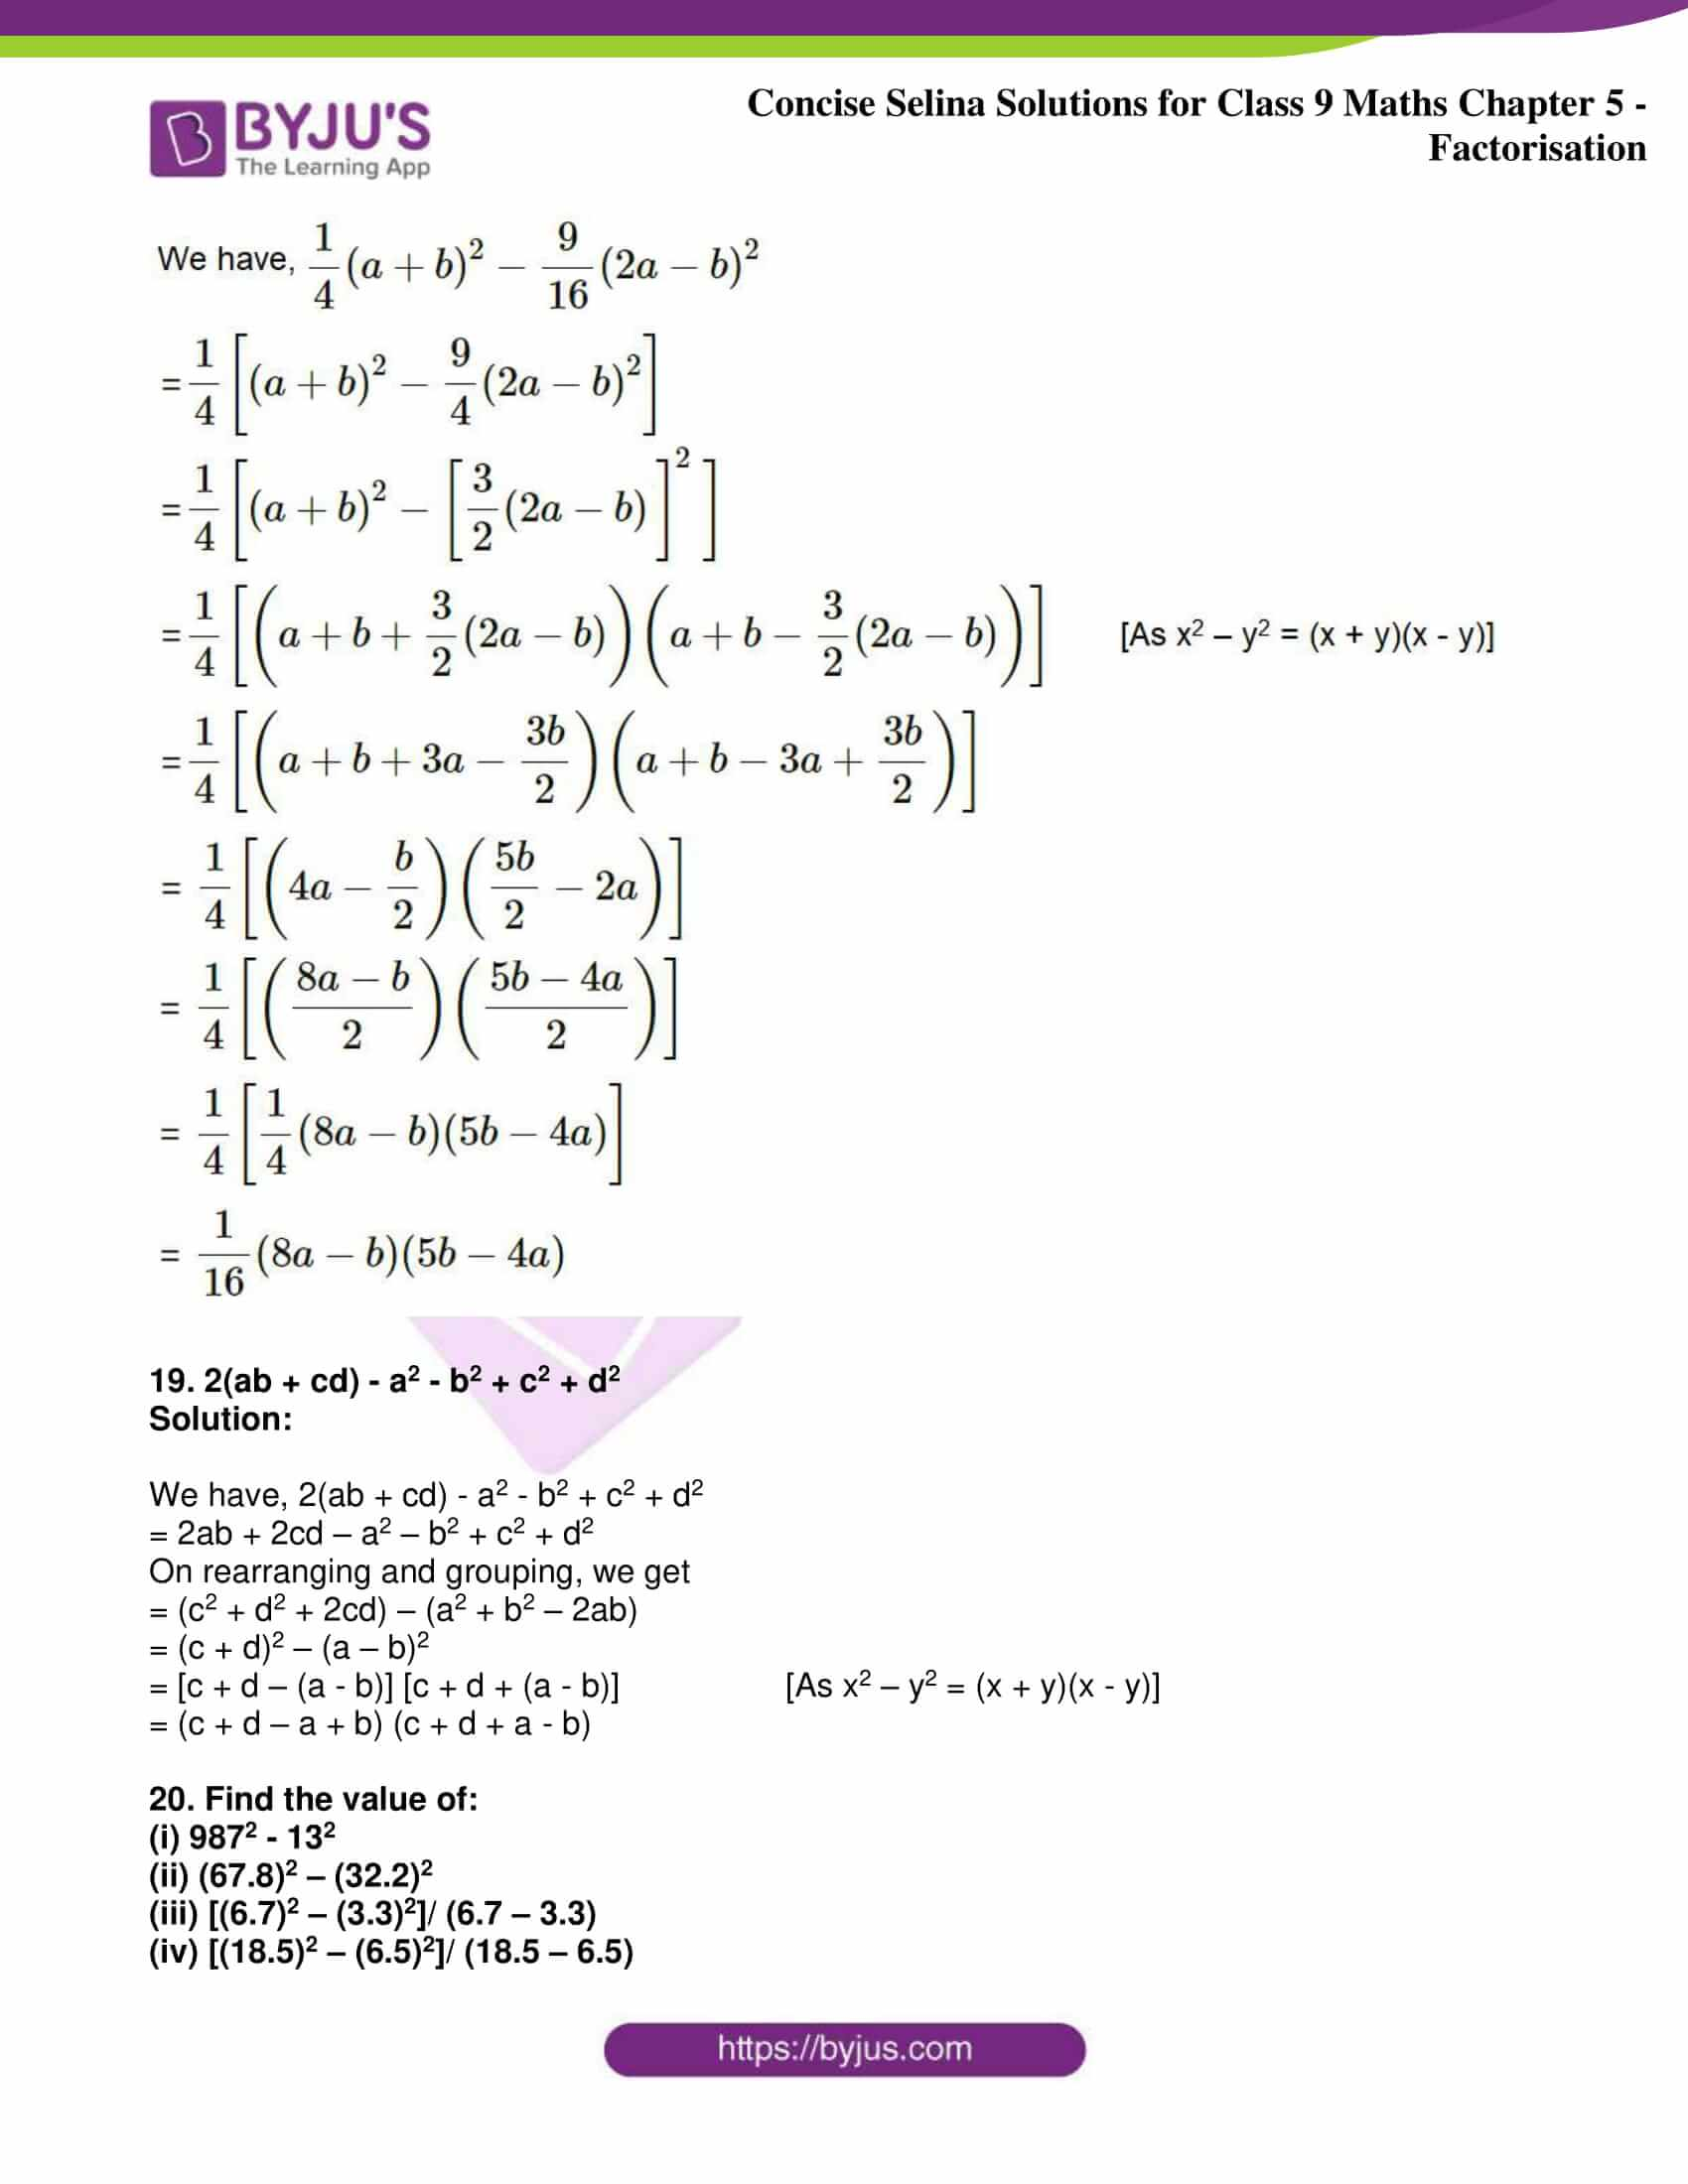 icse class 9 maths may10 selina solutions chapter 5 factorisation 30